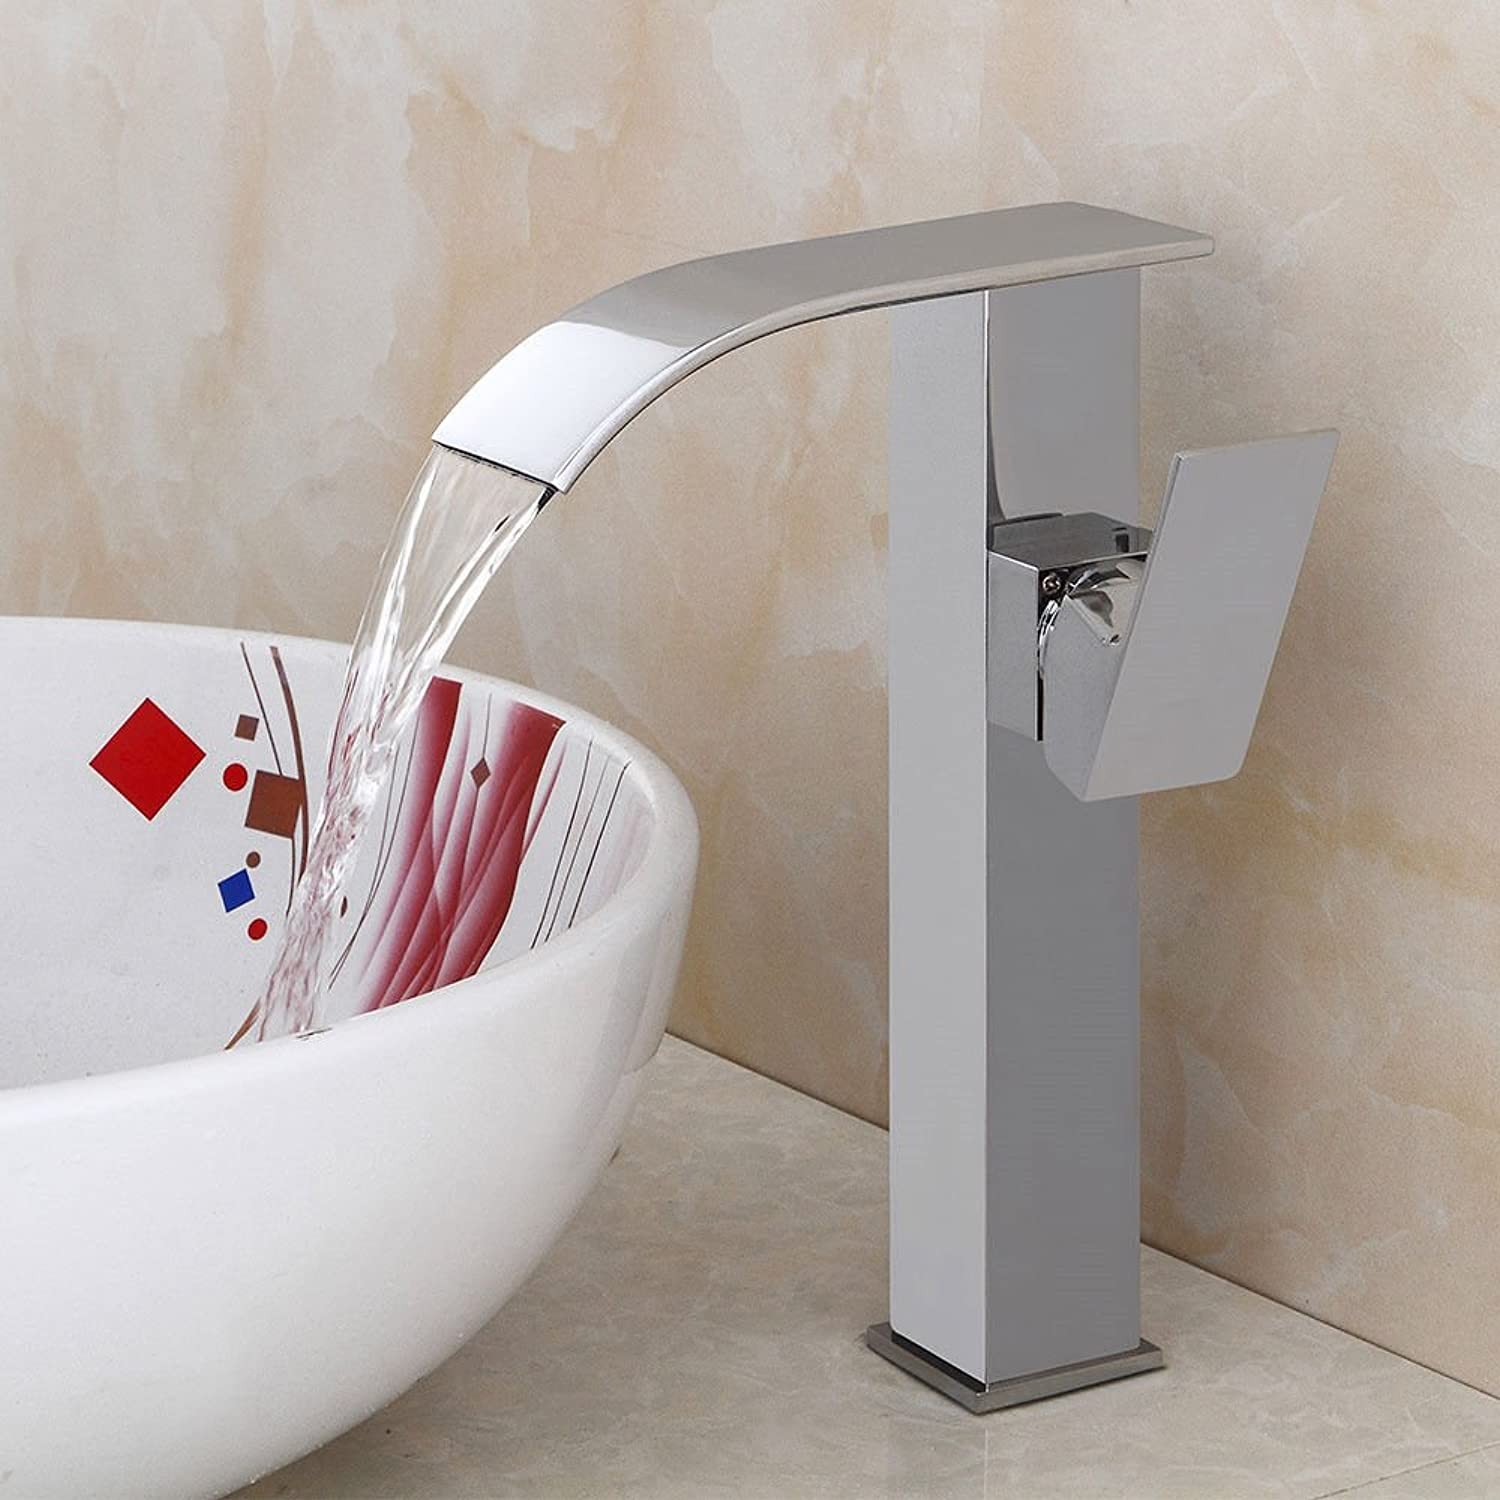 MulFaucet Faucet Water tap Taps Swivel Hoses Black Creative hot and Cold Bathroom Cabinet Bathroom wash Basin Personality A